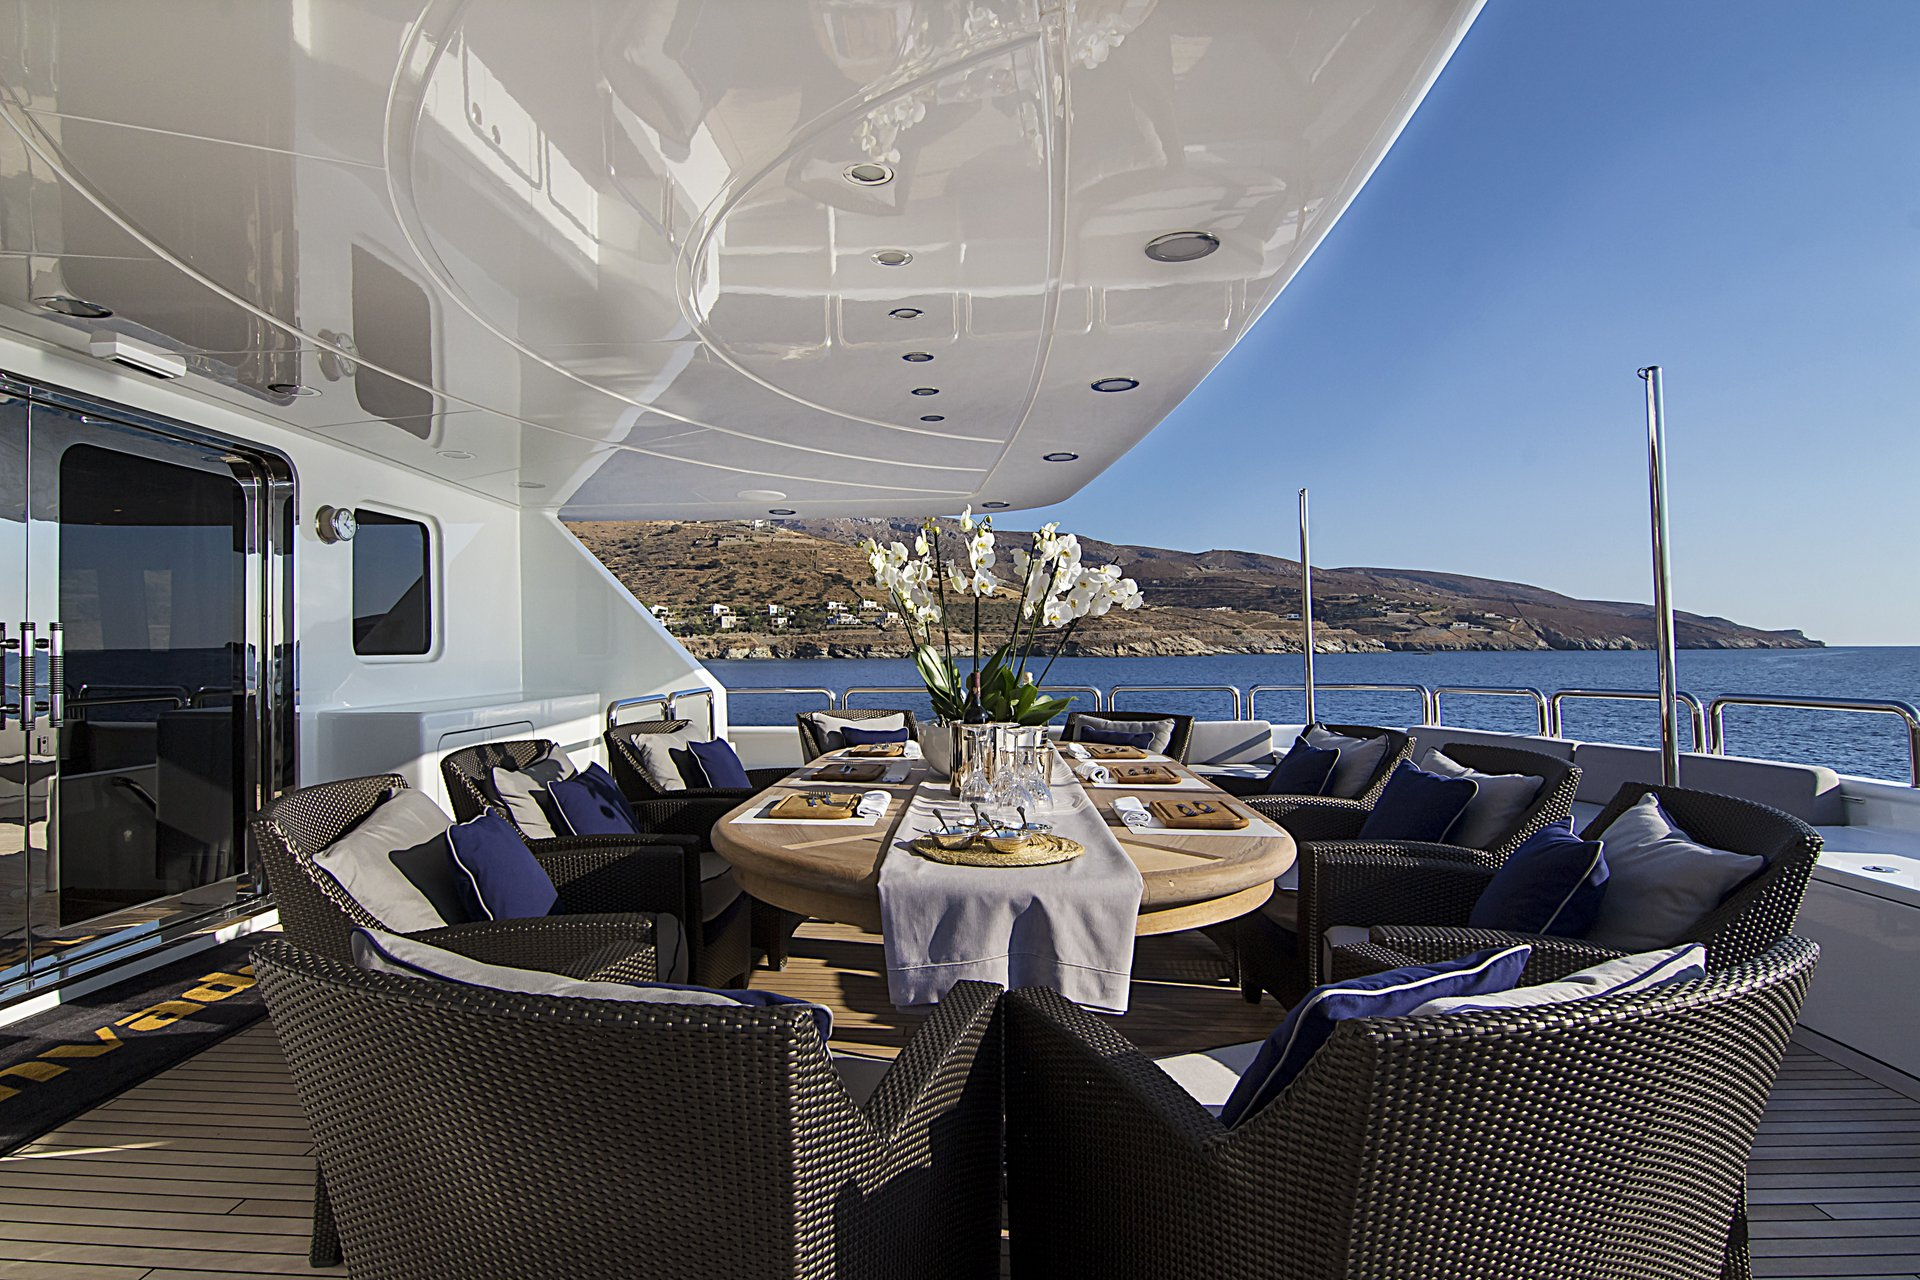 m/y invader yacht for charter outdoor set dining table